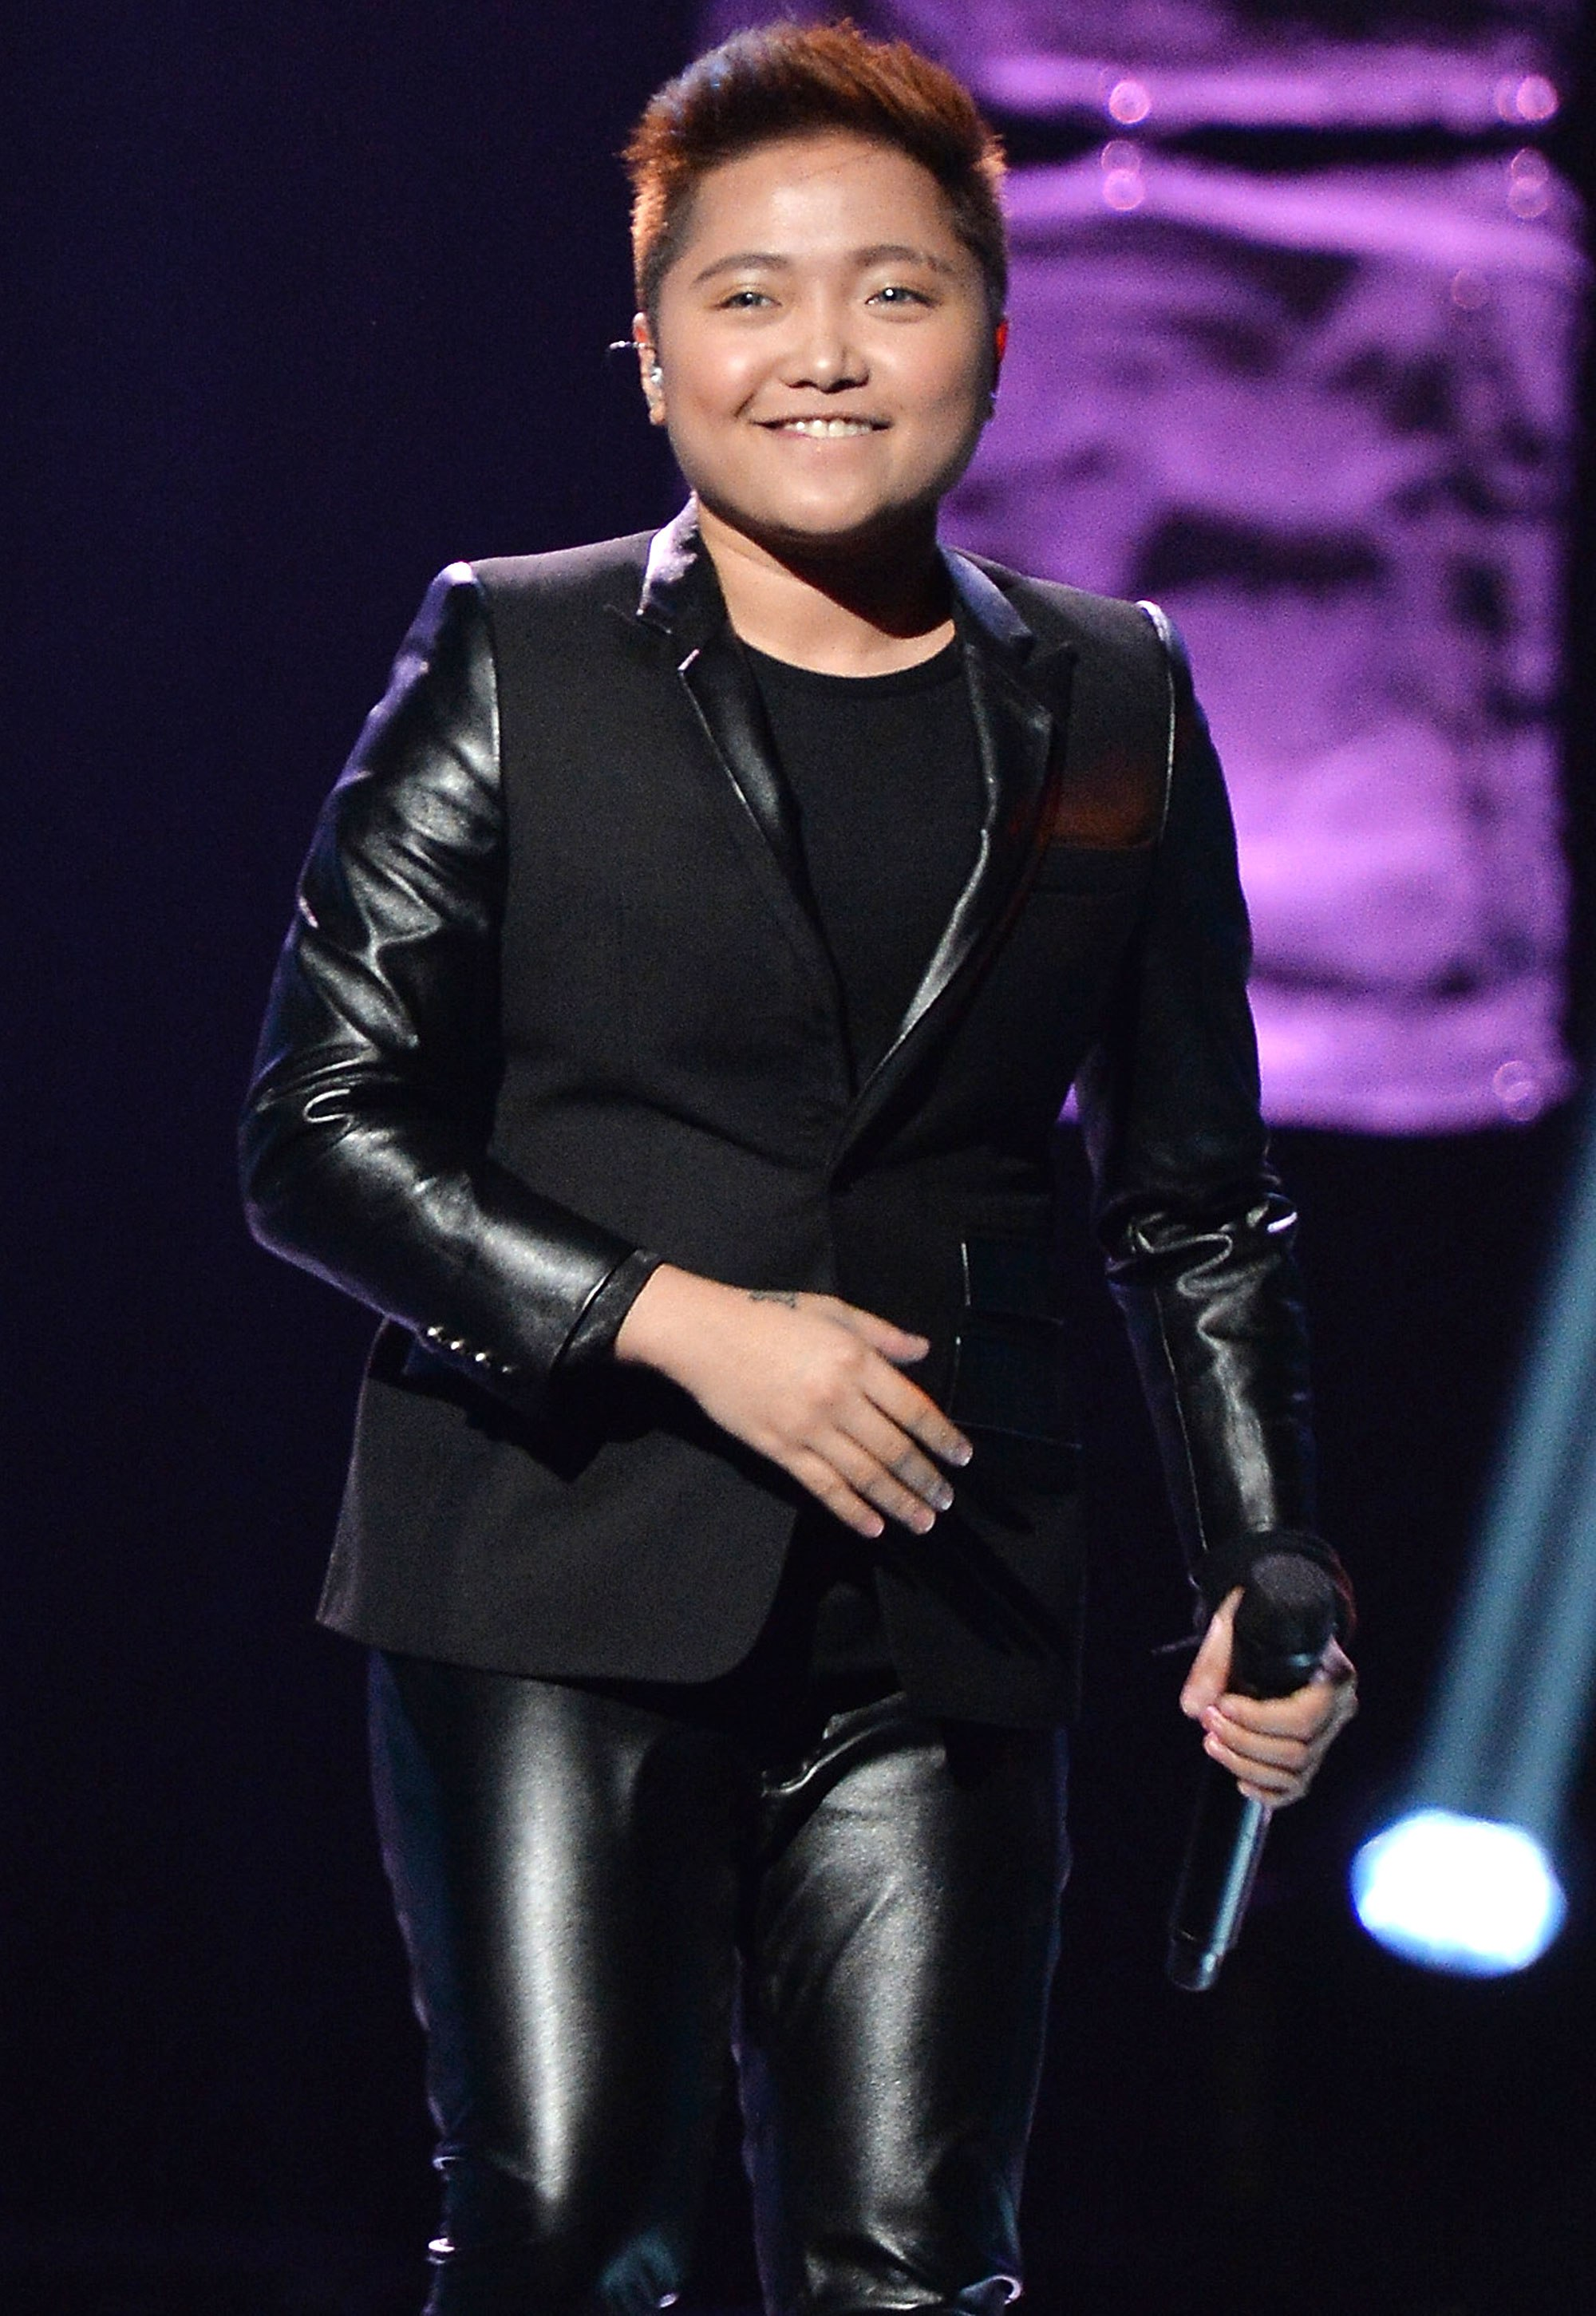 Jake Zyrus bây giờ - Ảnh: Getty Images